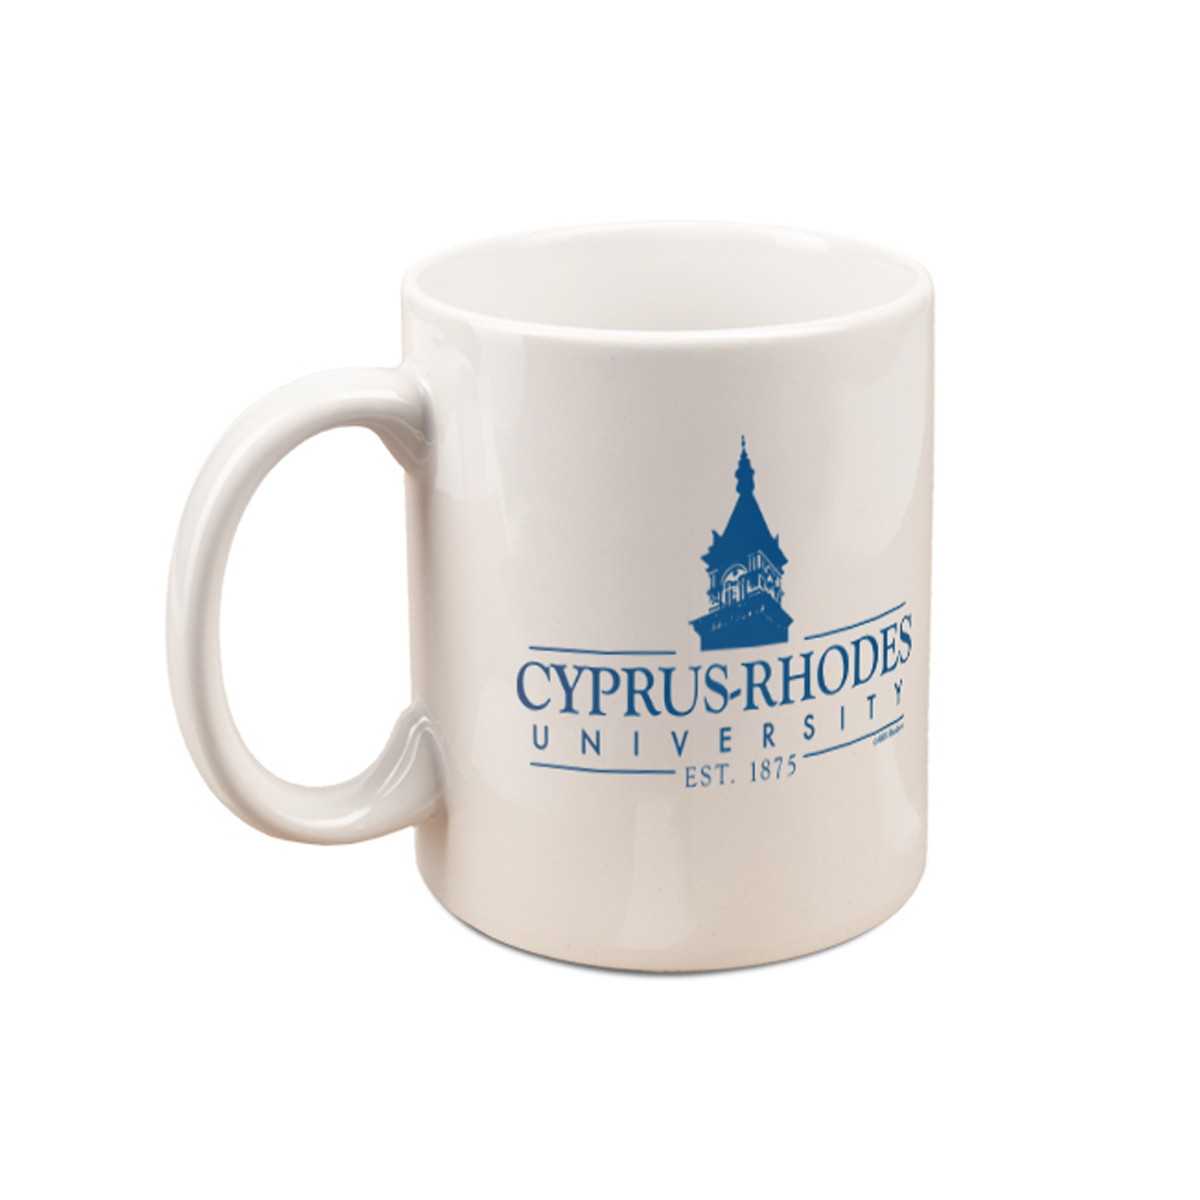 Greek Cyprus Rhodes Mug